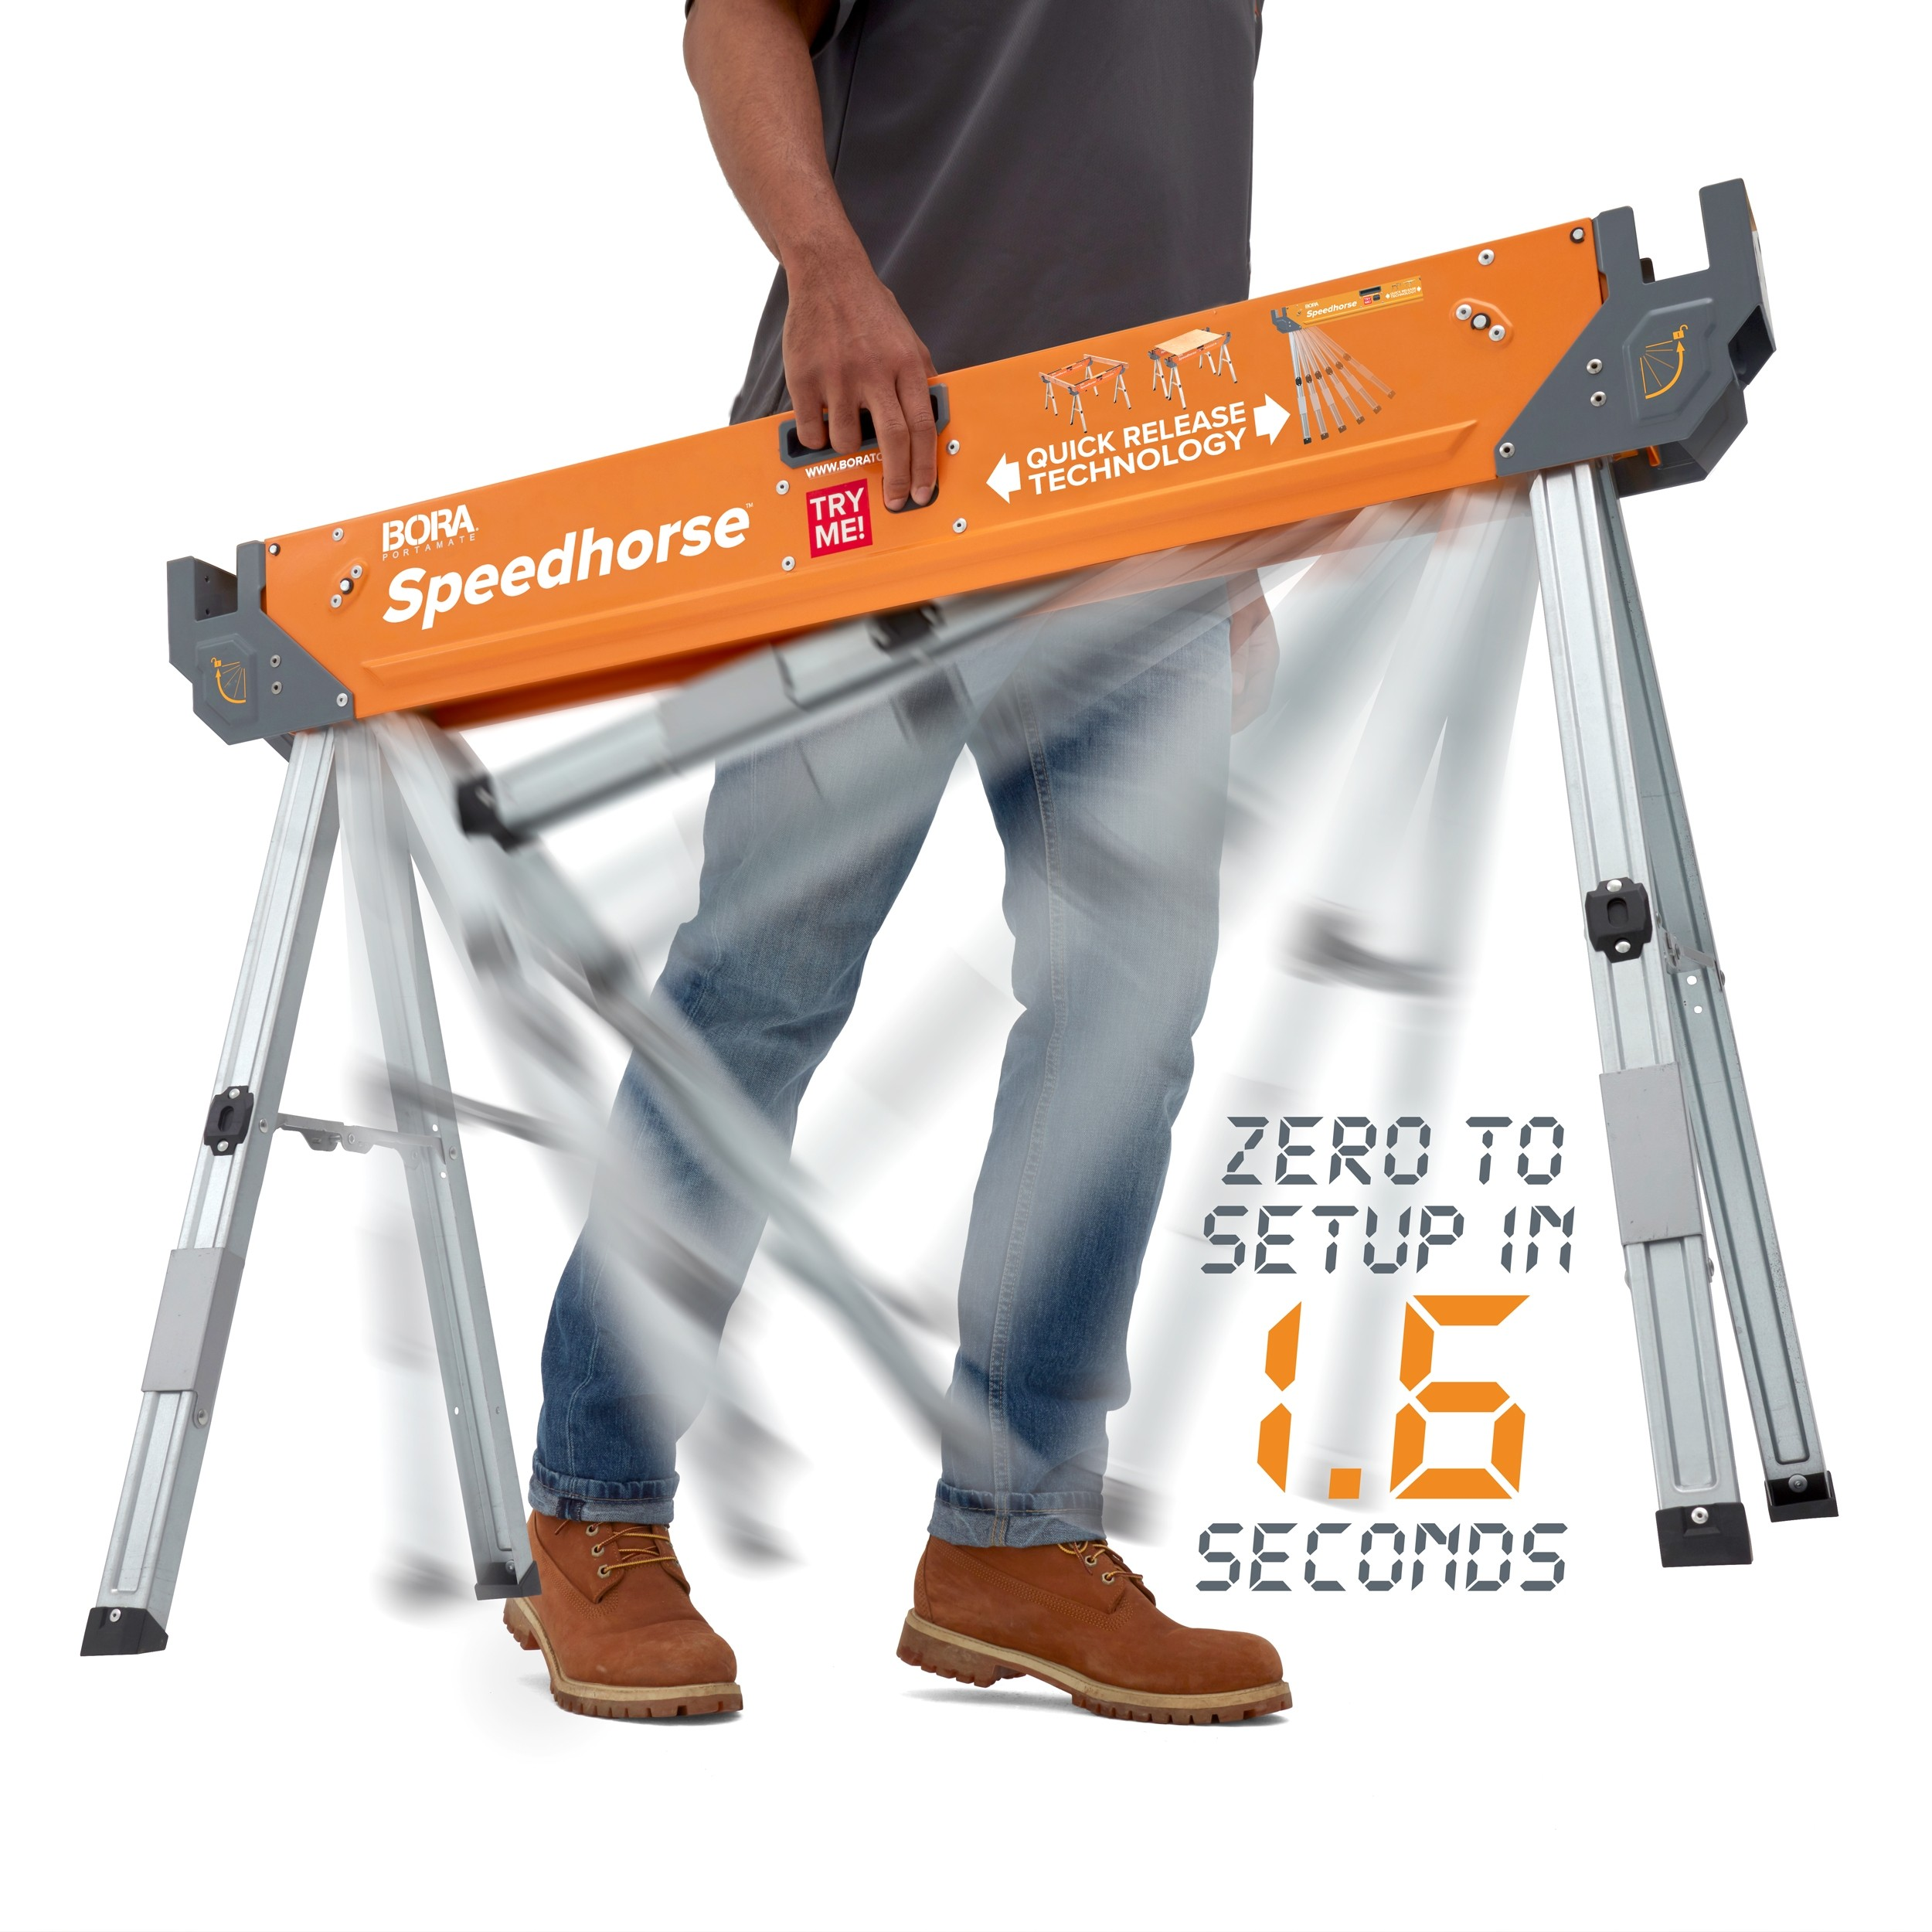 Bora Speedhorse Work Support System (Individual)